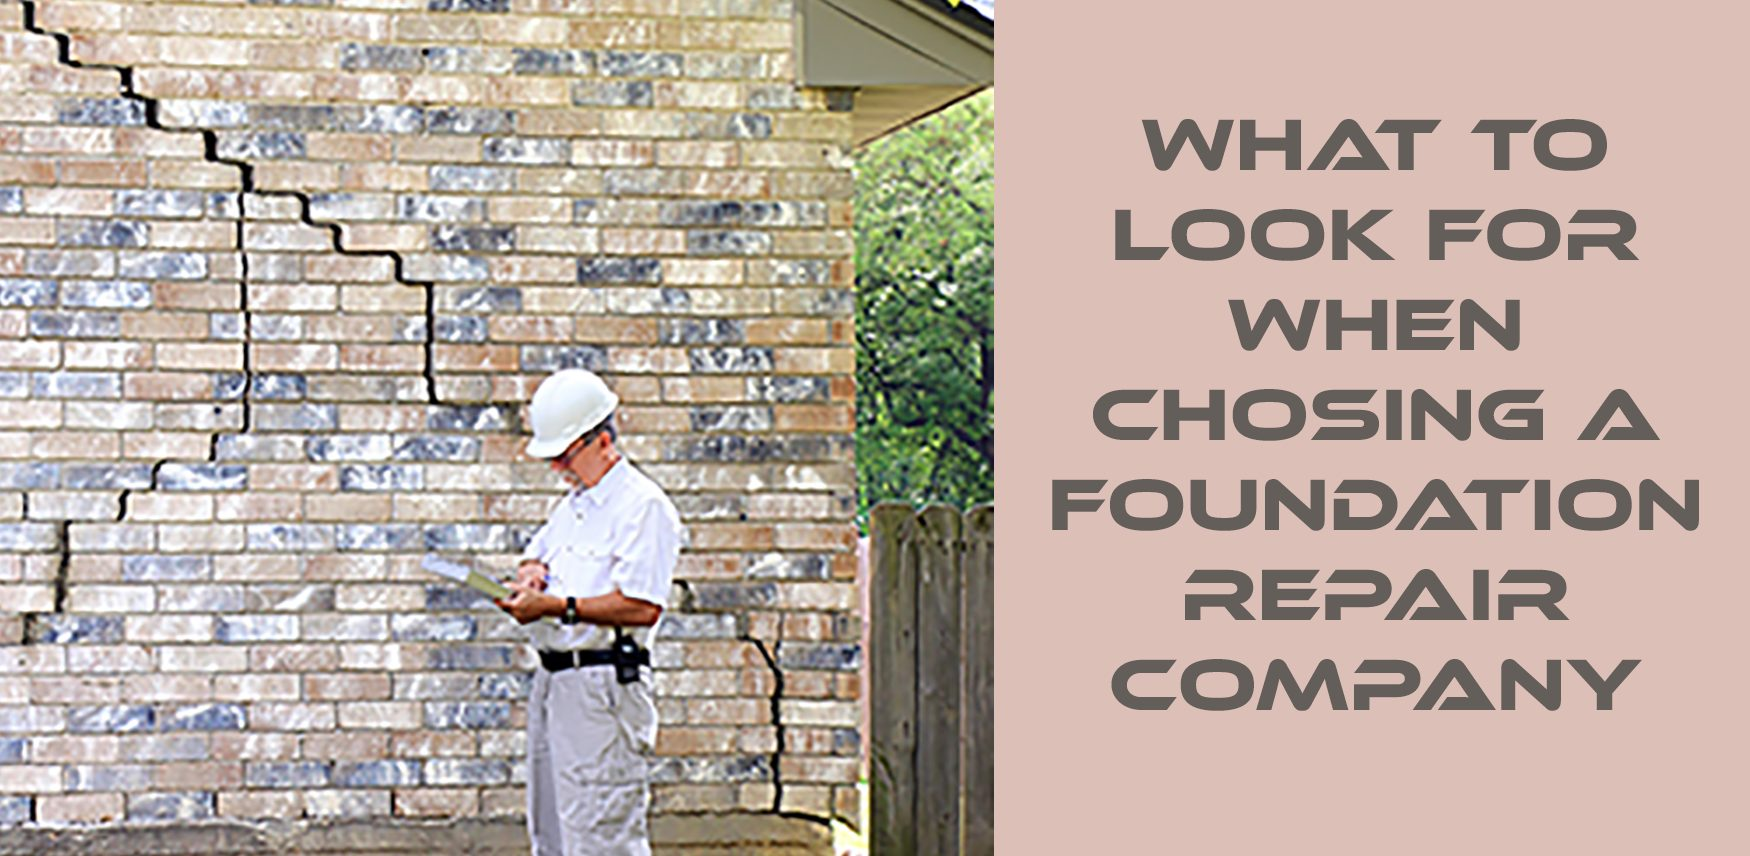 what to look for when choosing foundation repair company